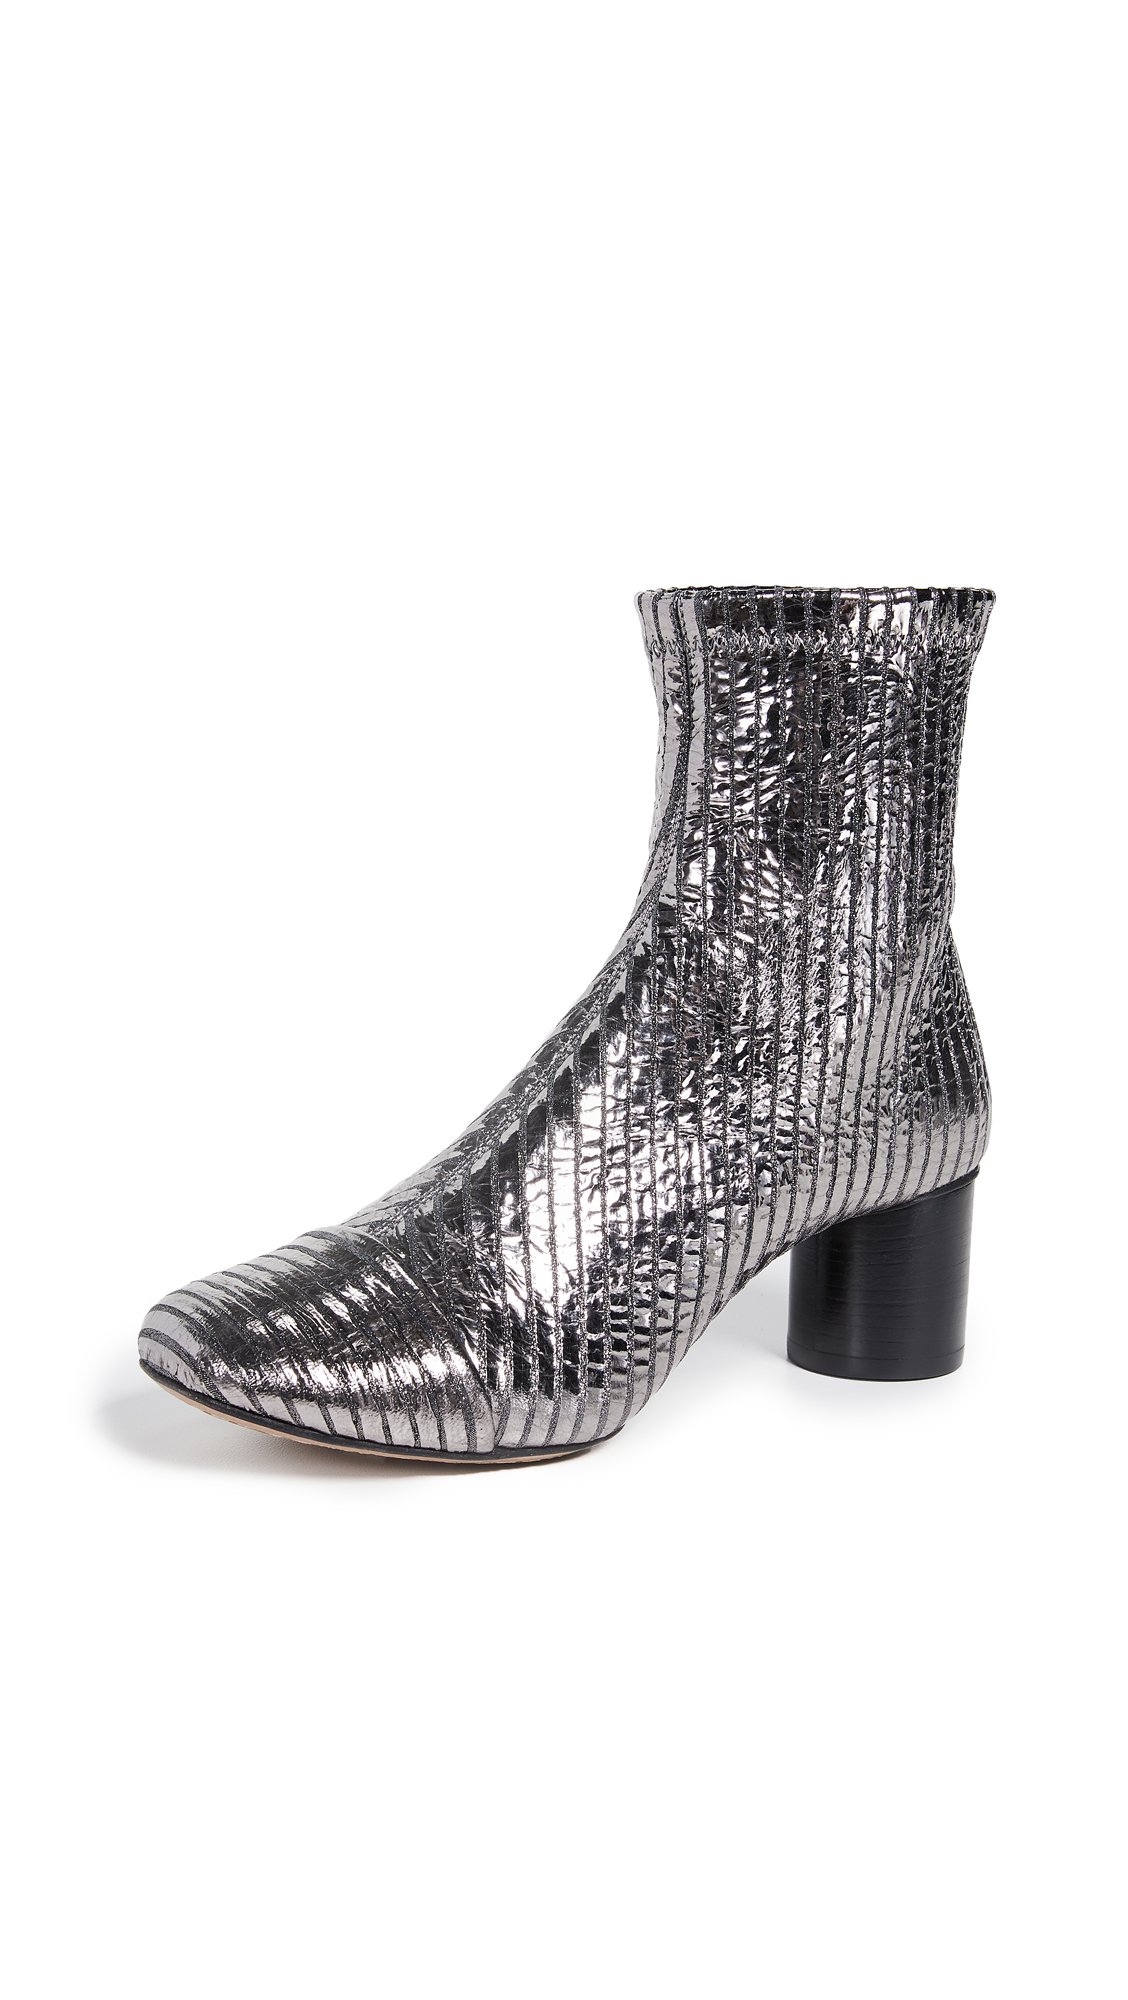 Isabel Marant Datsy Booties - Silver